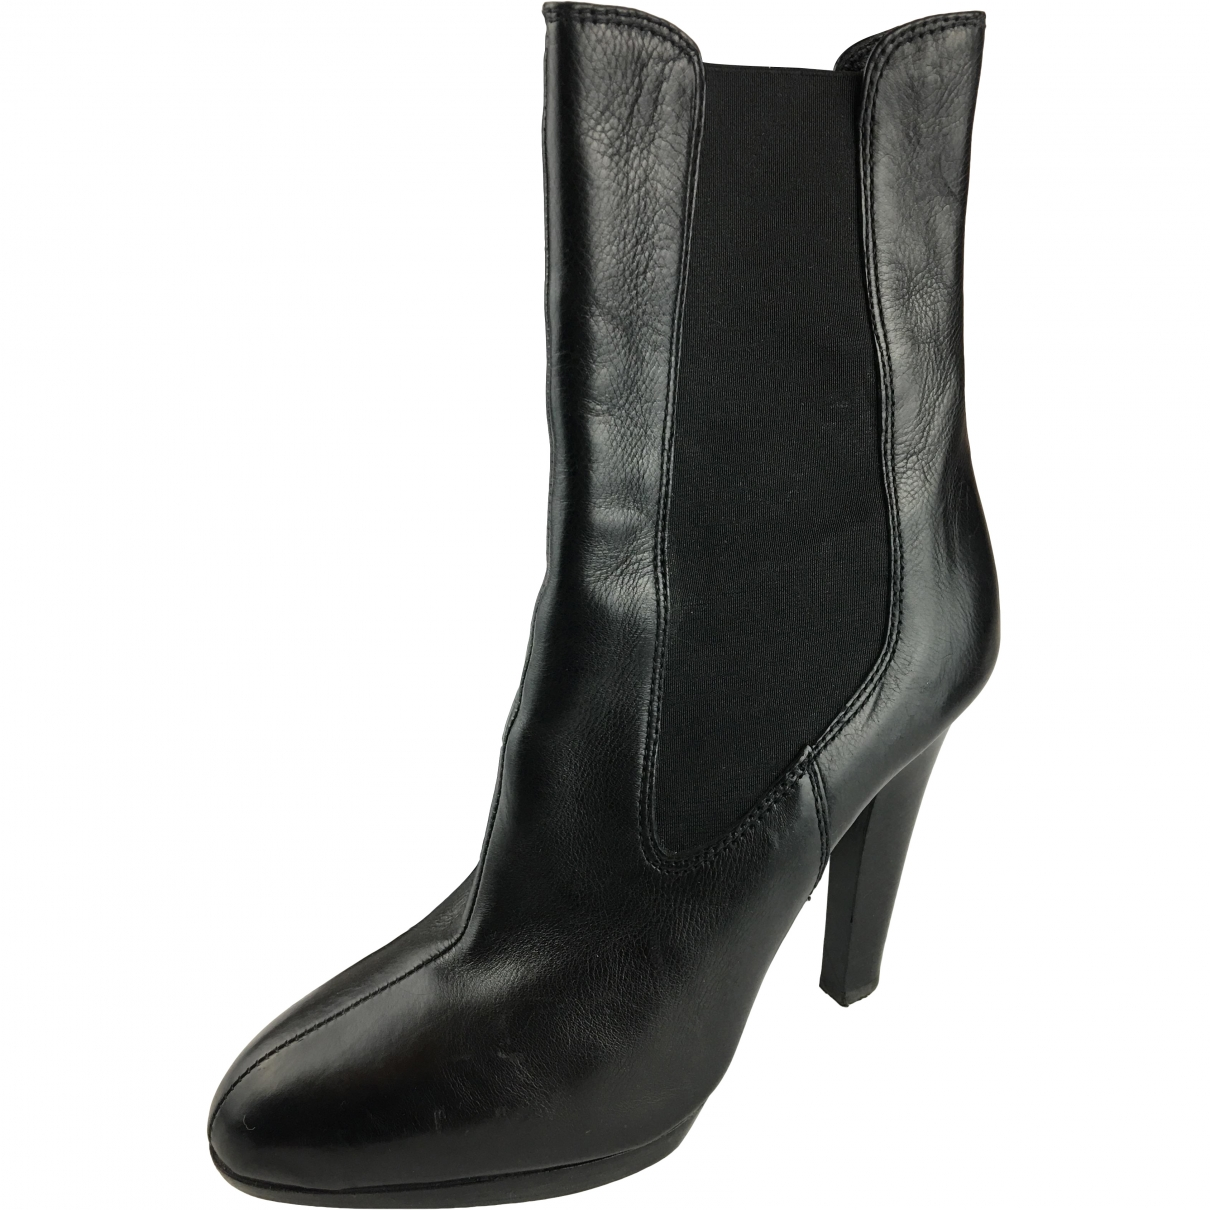 Miu Miu \N Black Leather Ankle boots for Women 39 EU